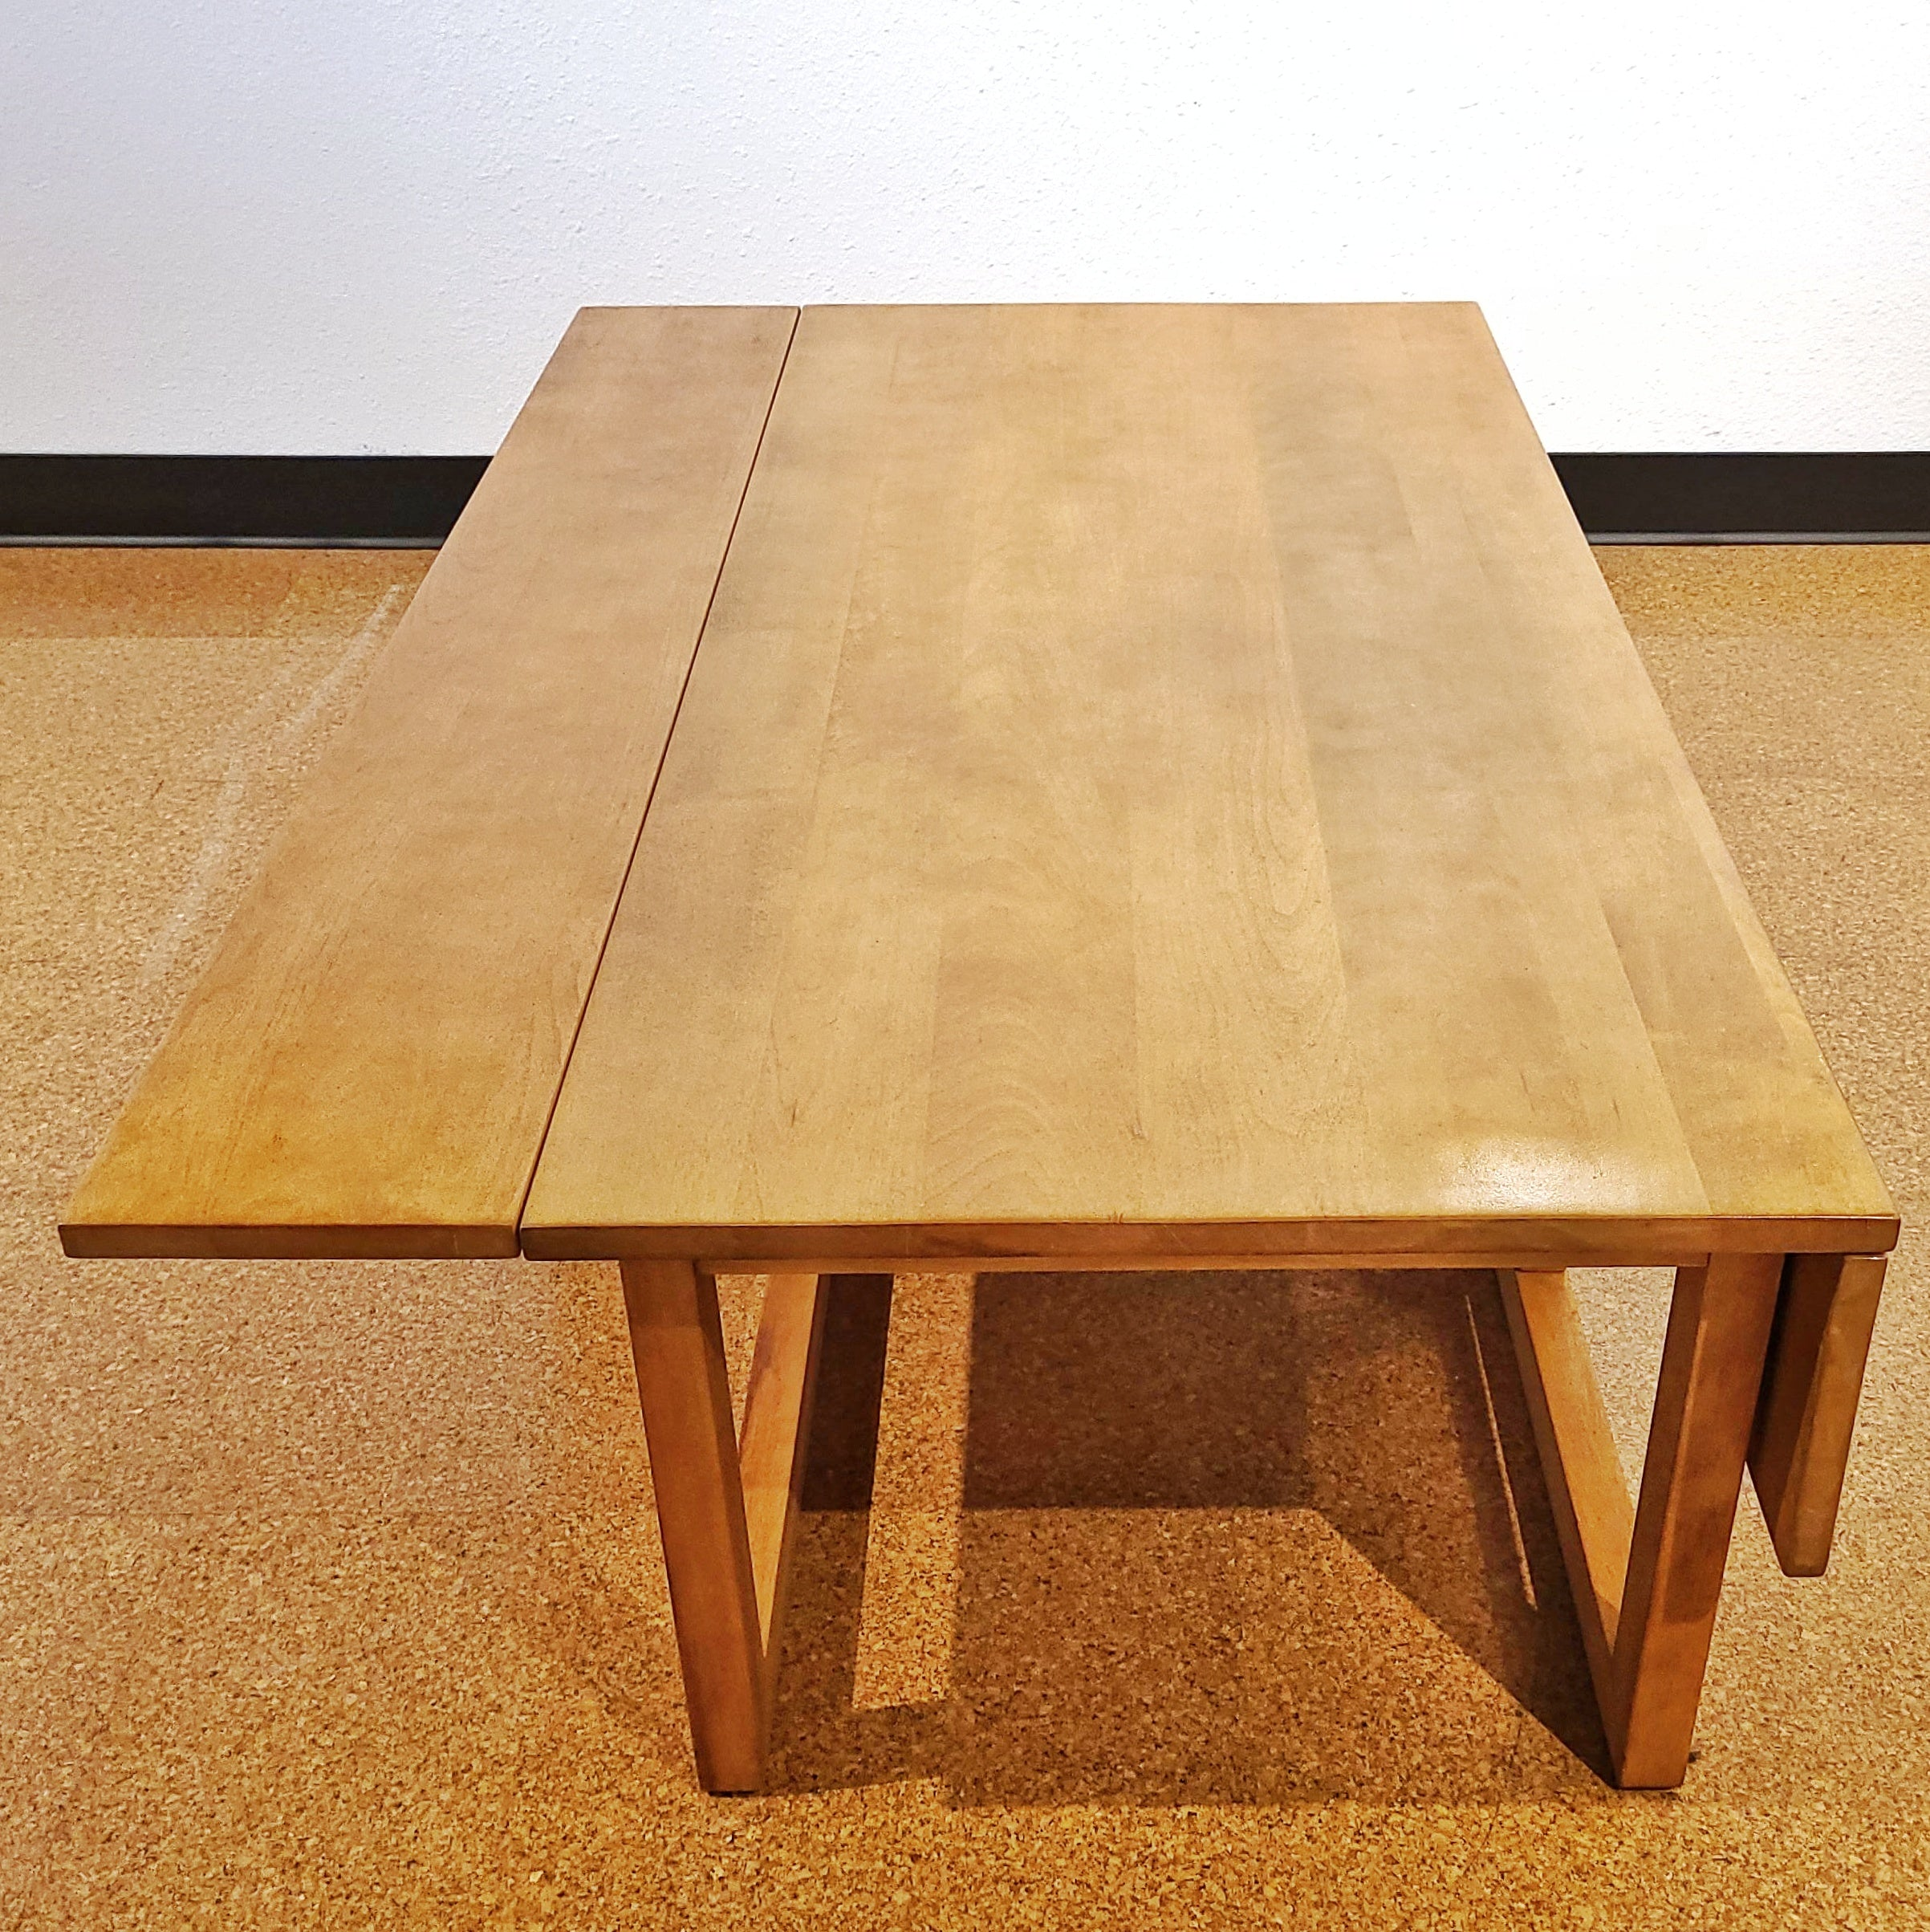 SOLID MAPLE DROP-LEAF COFFEE TABLE